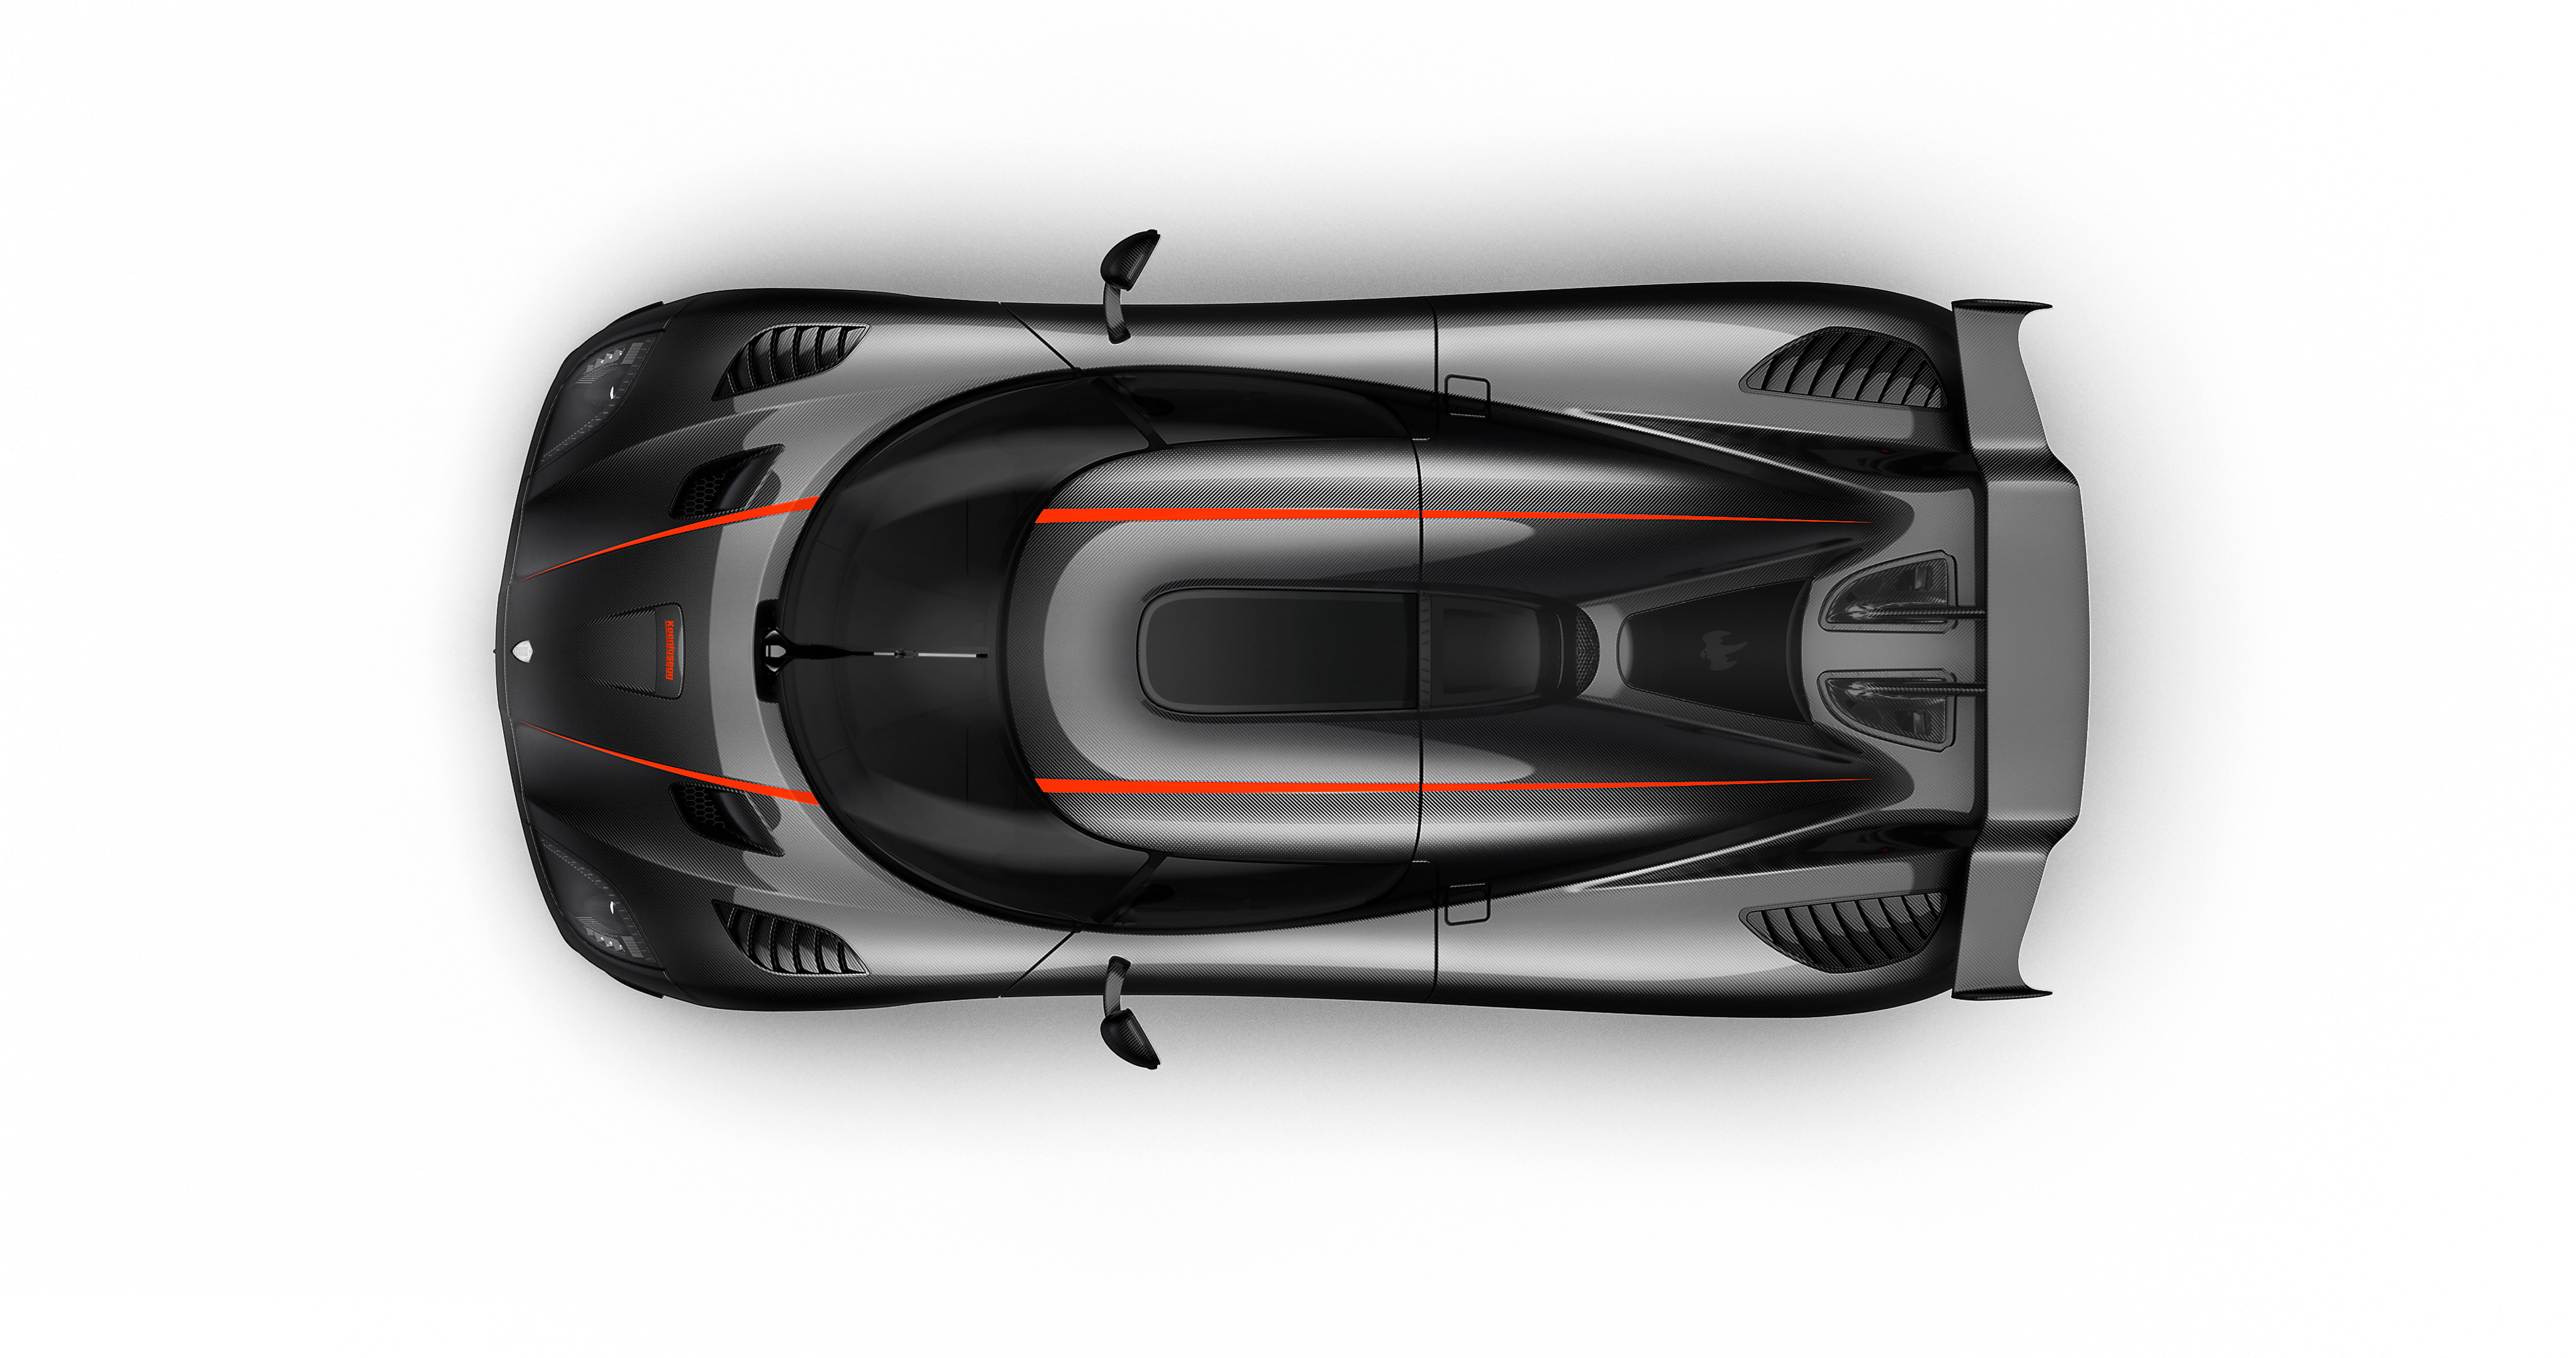 Uber Black Car Models >> Koenigsegg Signs Up Dealerships in America, First Federalized Model Is the Agera RS - autoevolution